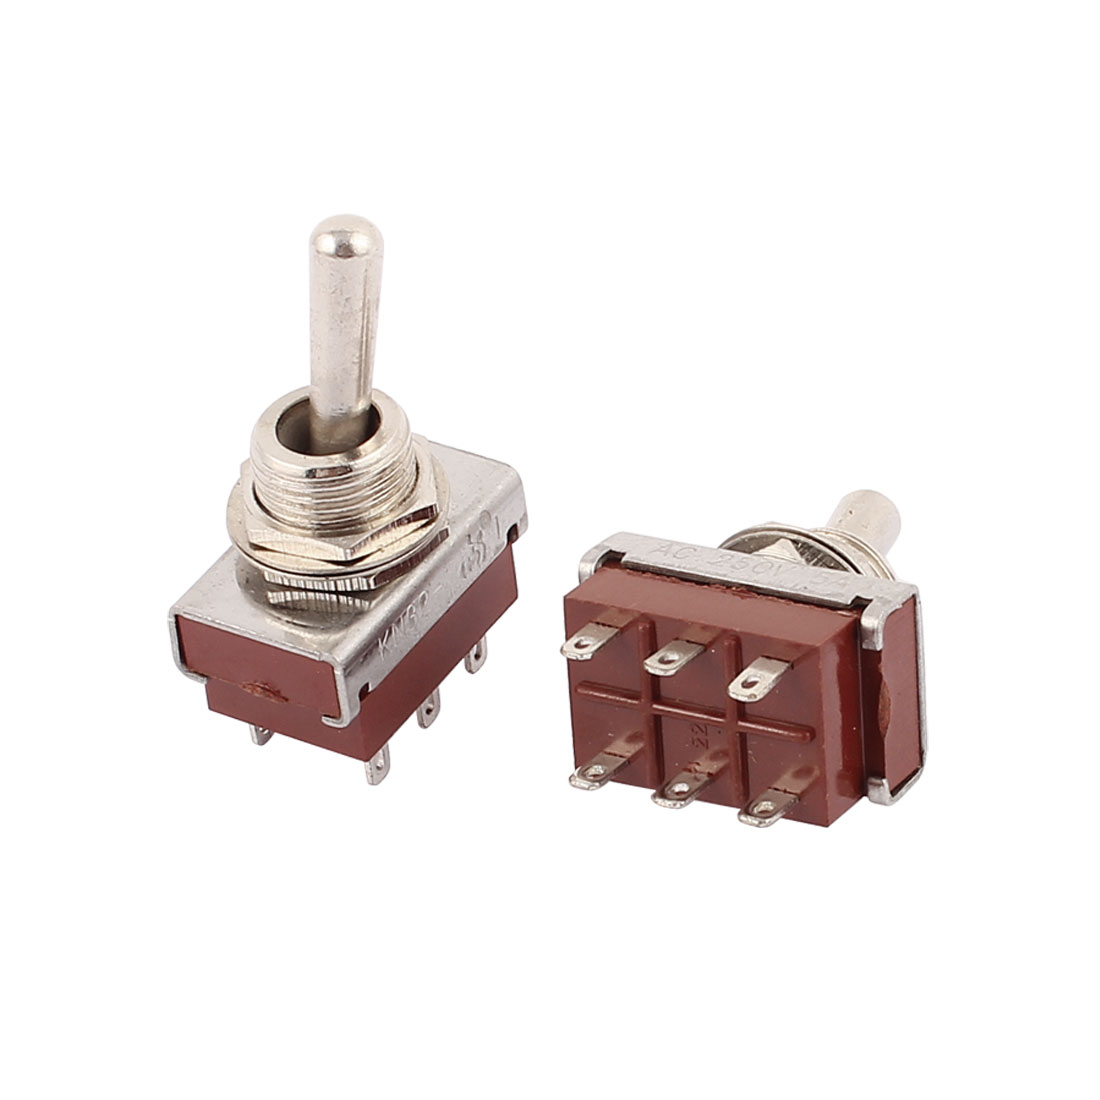 2 Pcs DPDT KN-32 250VAC 5A ON/OFF/OF 6 Terminal Latching Toggle Switch